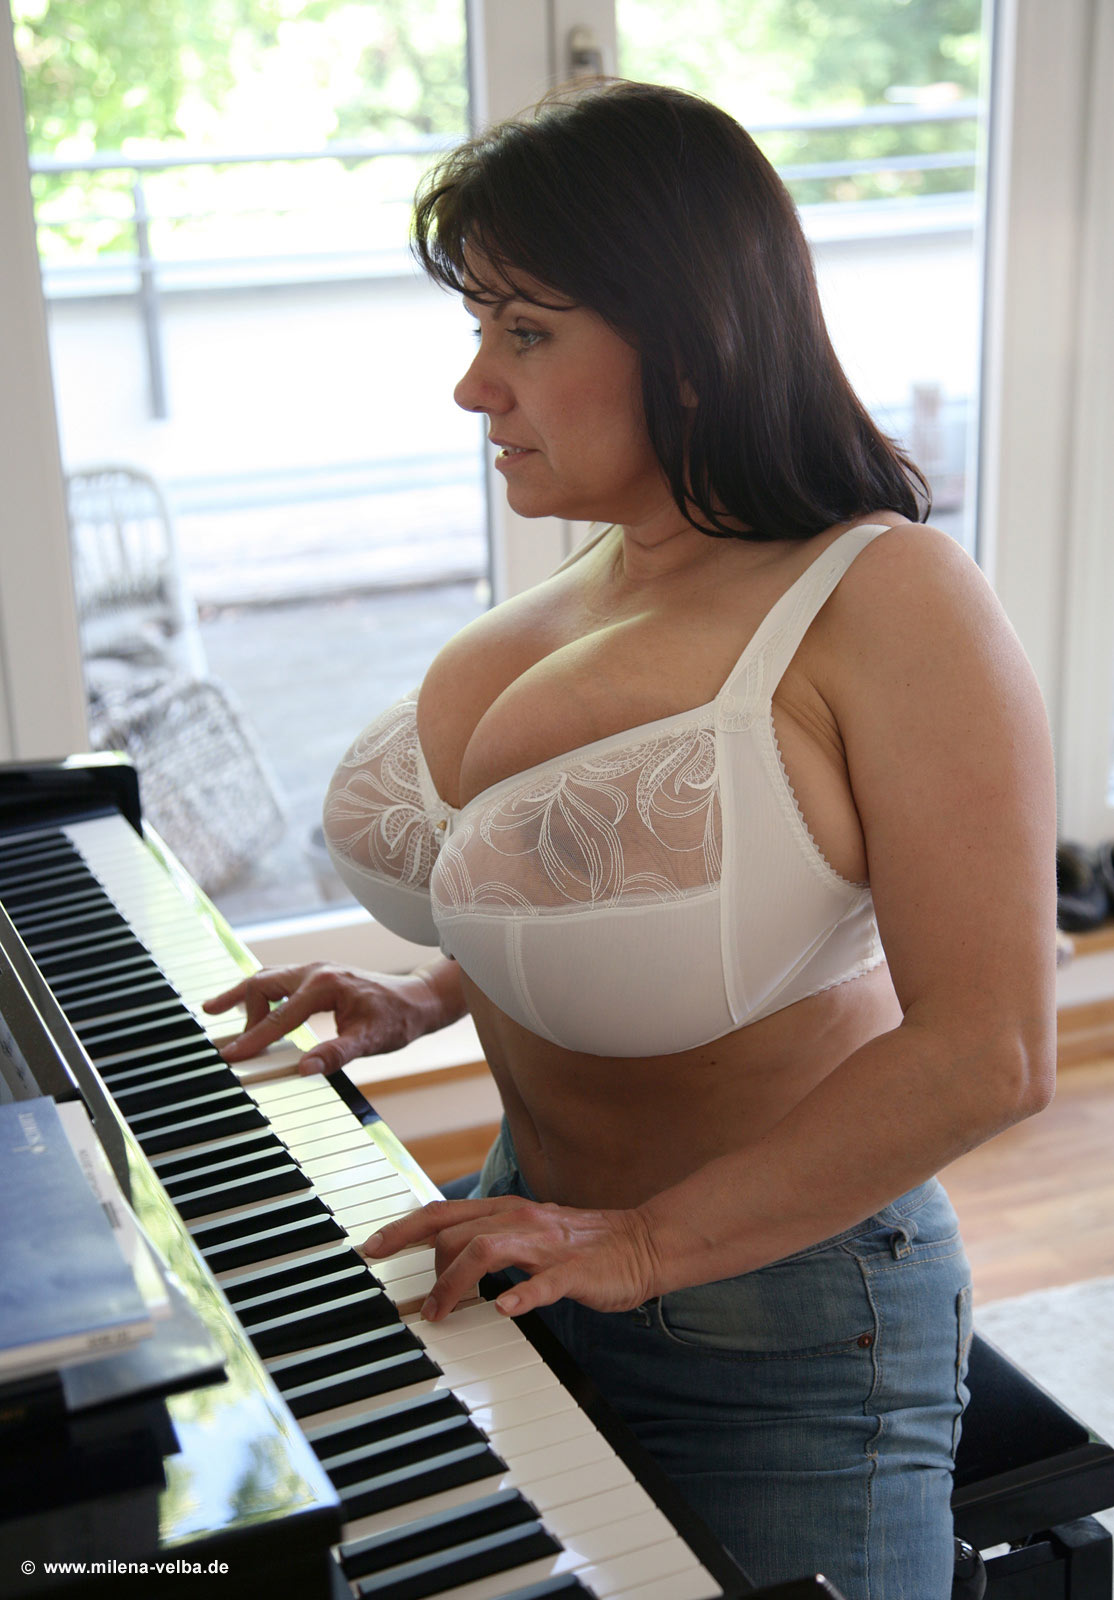 Piano lesson for busty plump milf 4